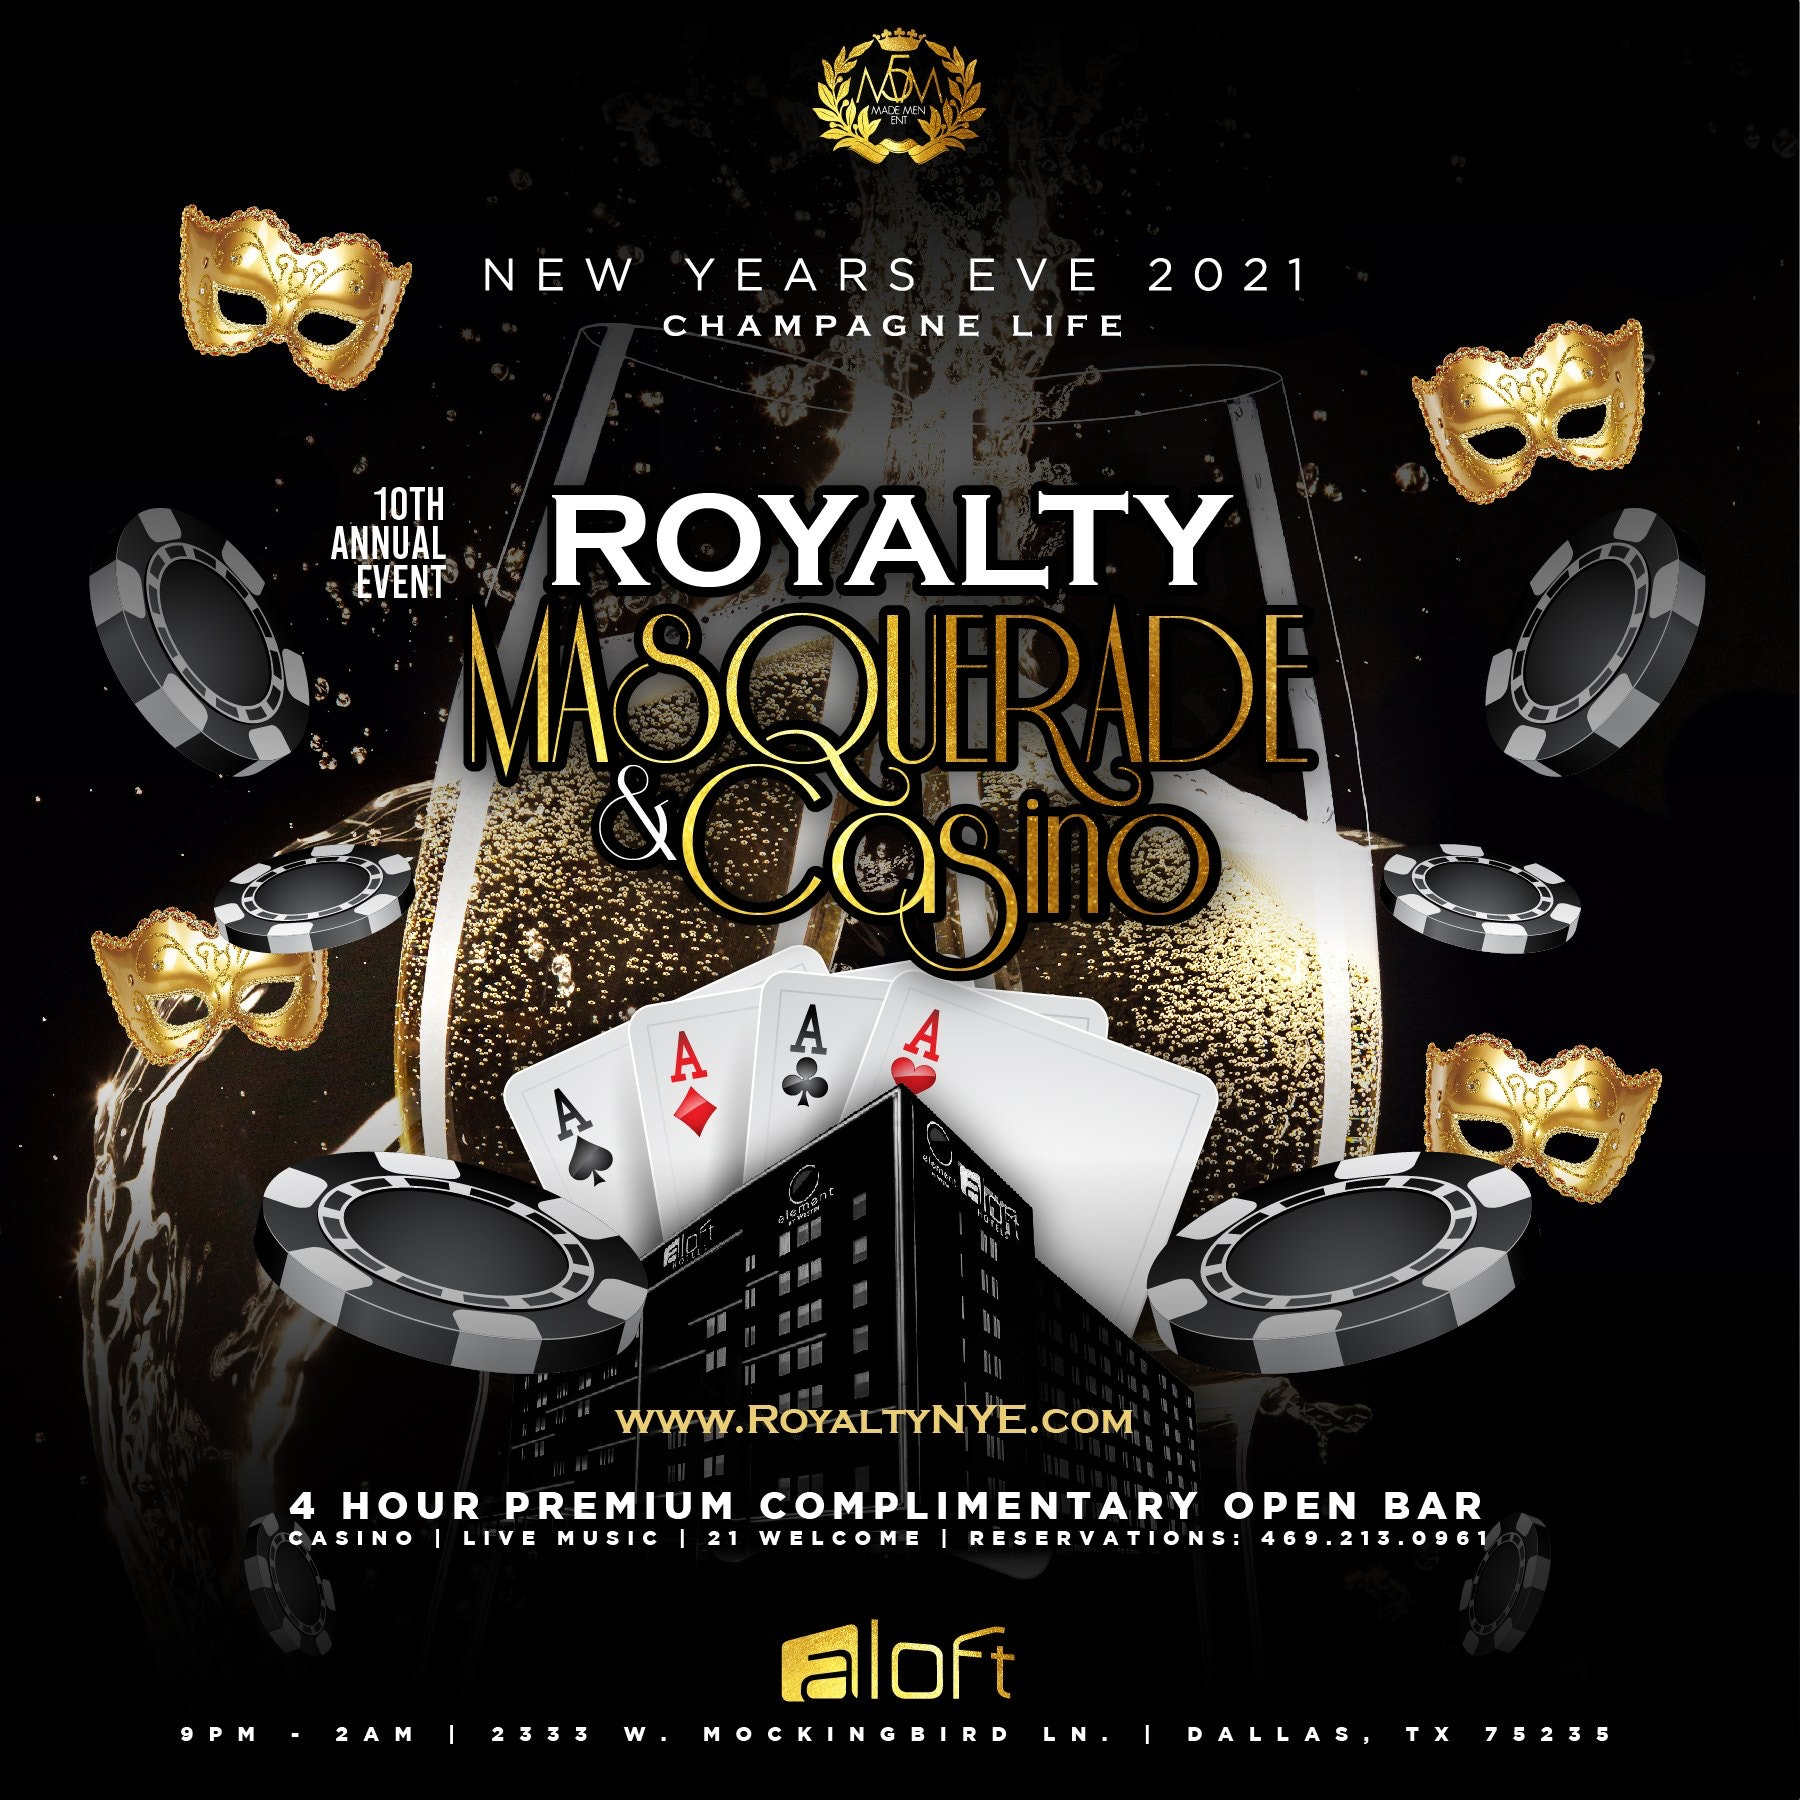 10th Annual New Years Eve 2021 Champagne Life Royalty Masquerade Casino Dec 31 2020 9 00 Pm 2 00 Am